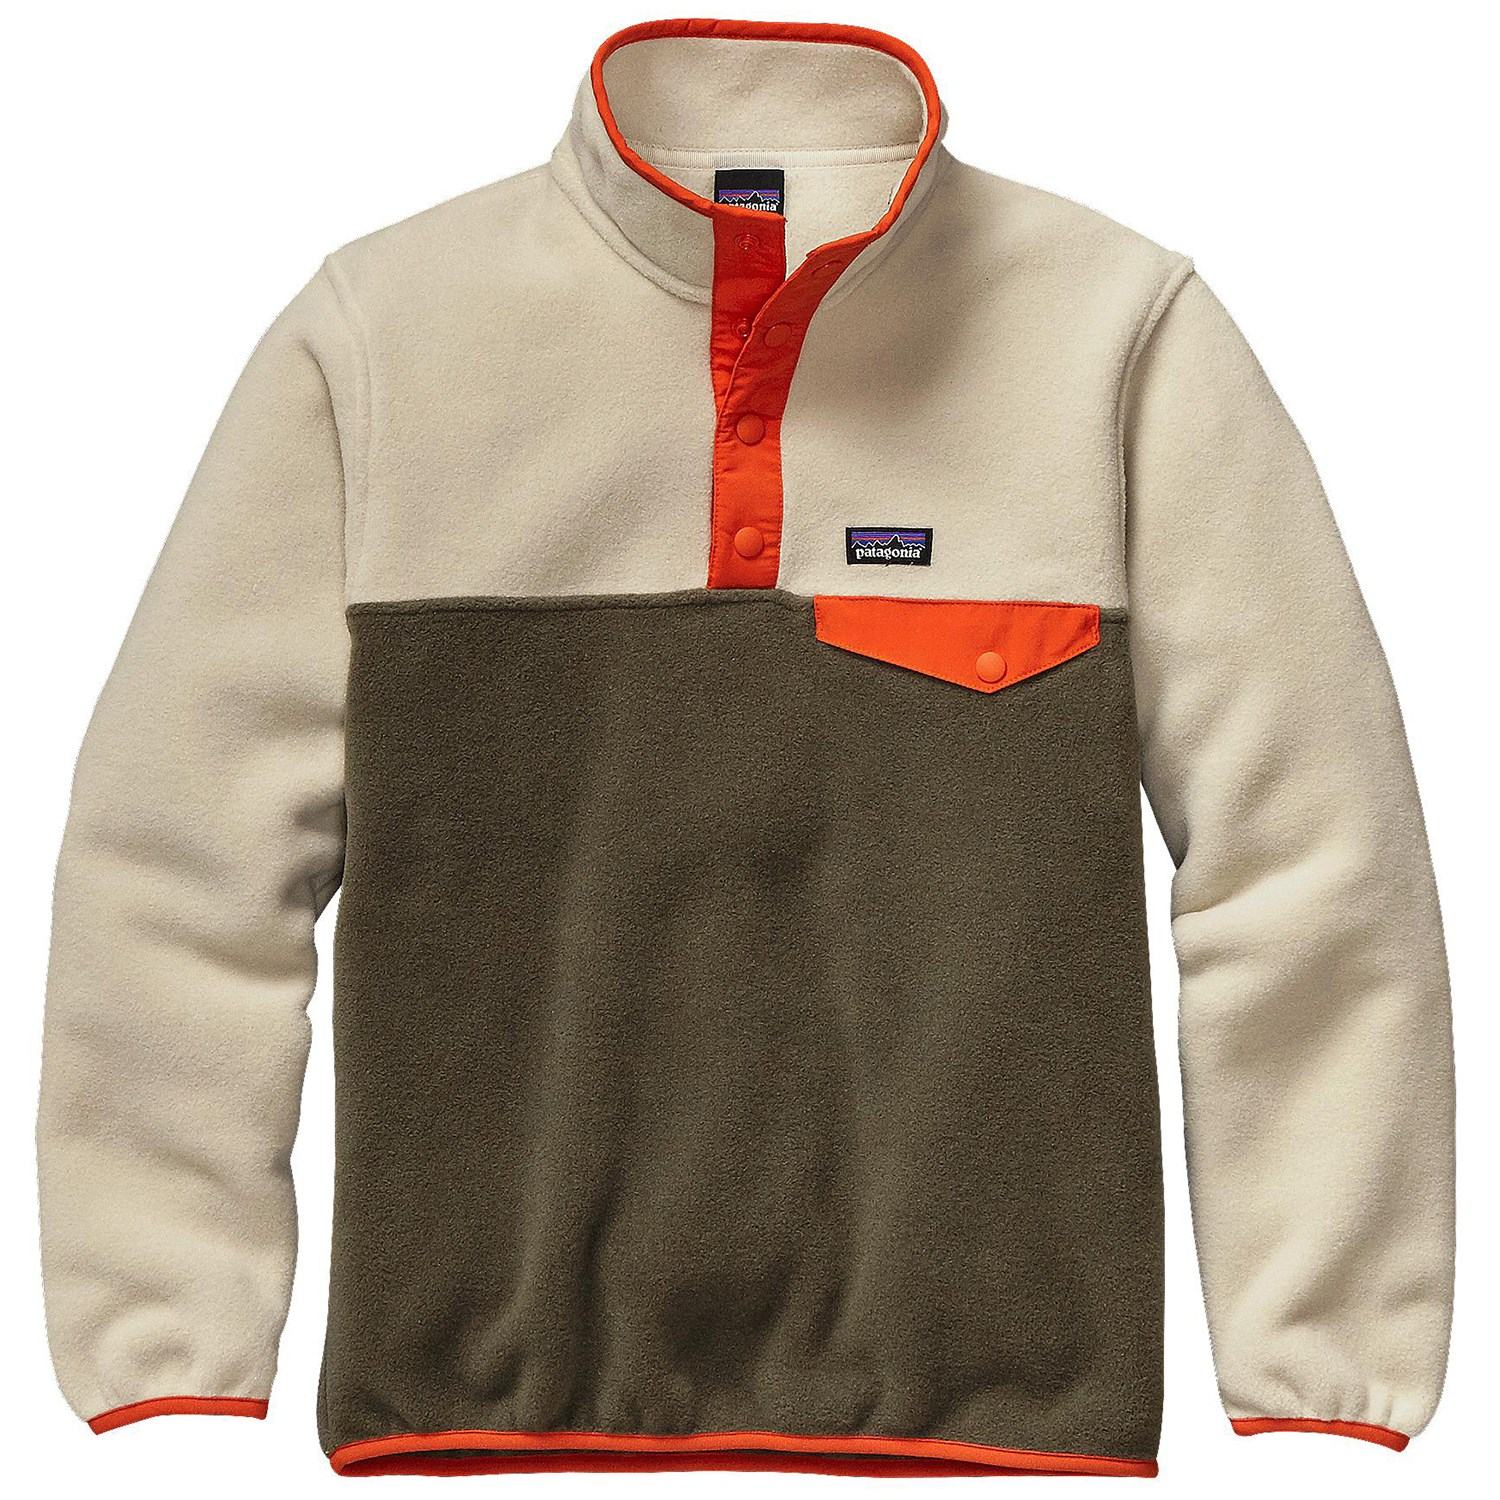 cc0bef450a6 Patagonia Lightweight Synchilla Snap-T Pullover Fleece - Boys